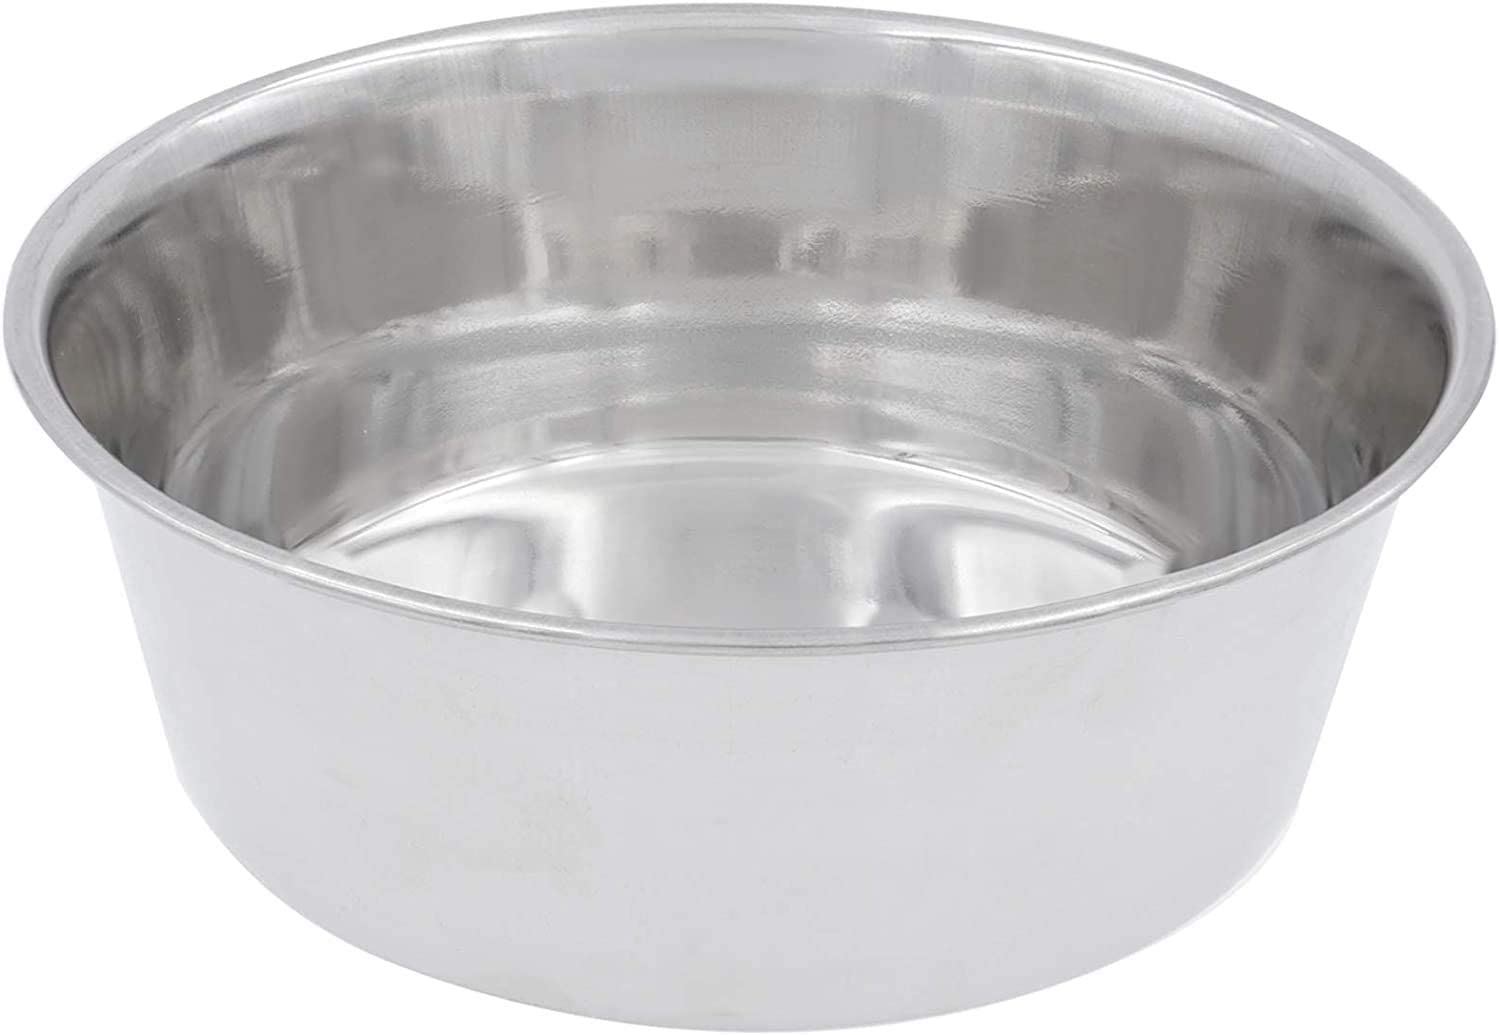 Fuzzy Puppy Pet Products Ranking TOP11 Dog Brand Cheap Sale Venue Bowl Duty Heavy